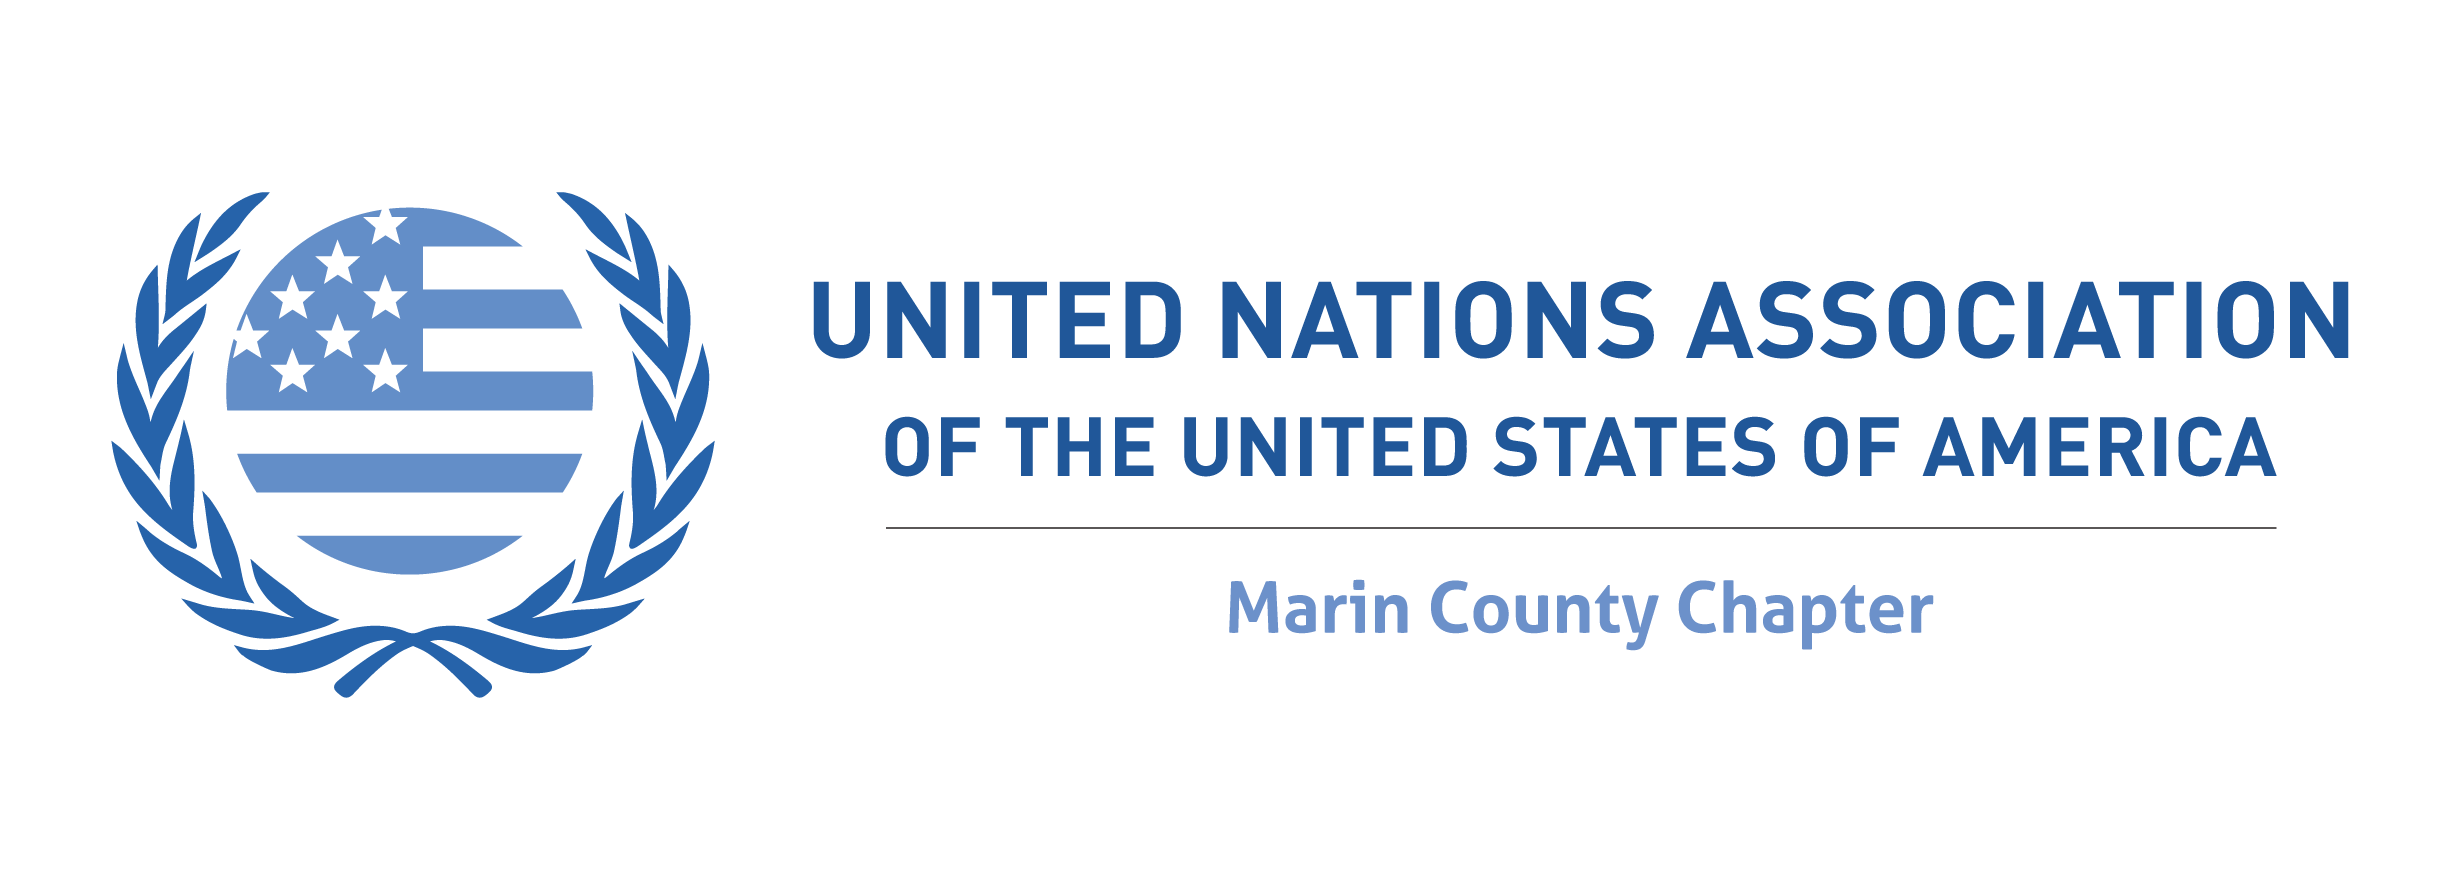 United Nations Association Marin County Chapter logo